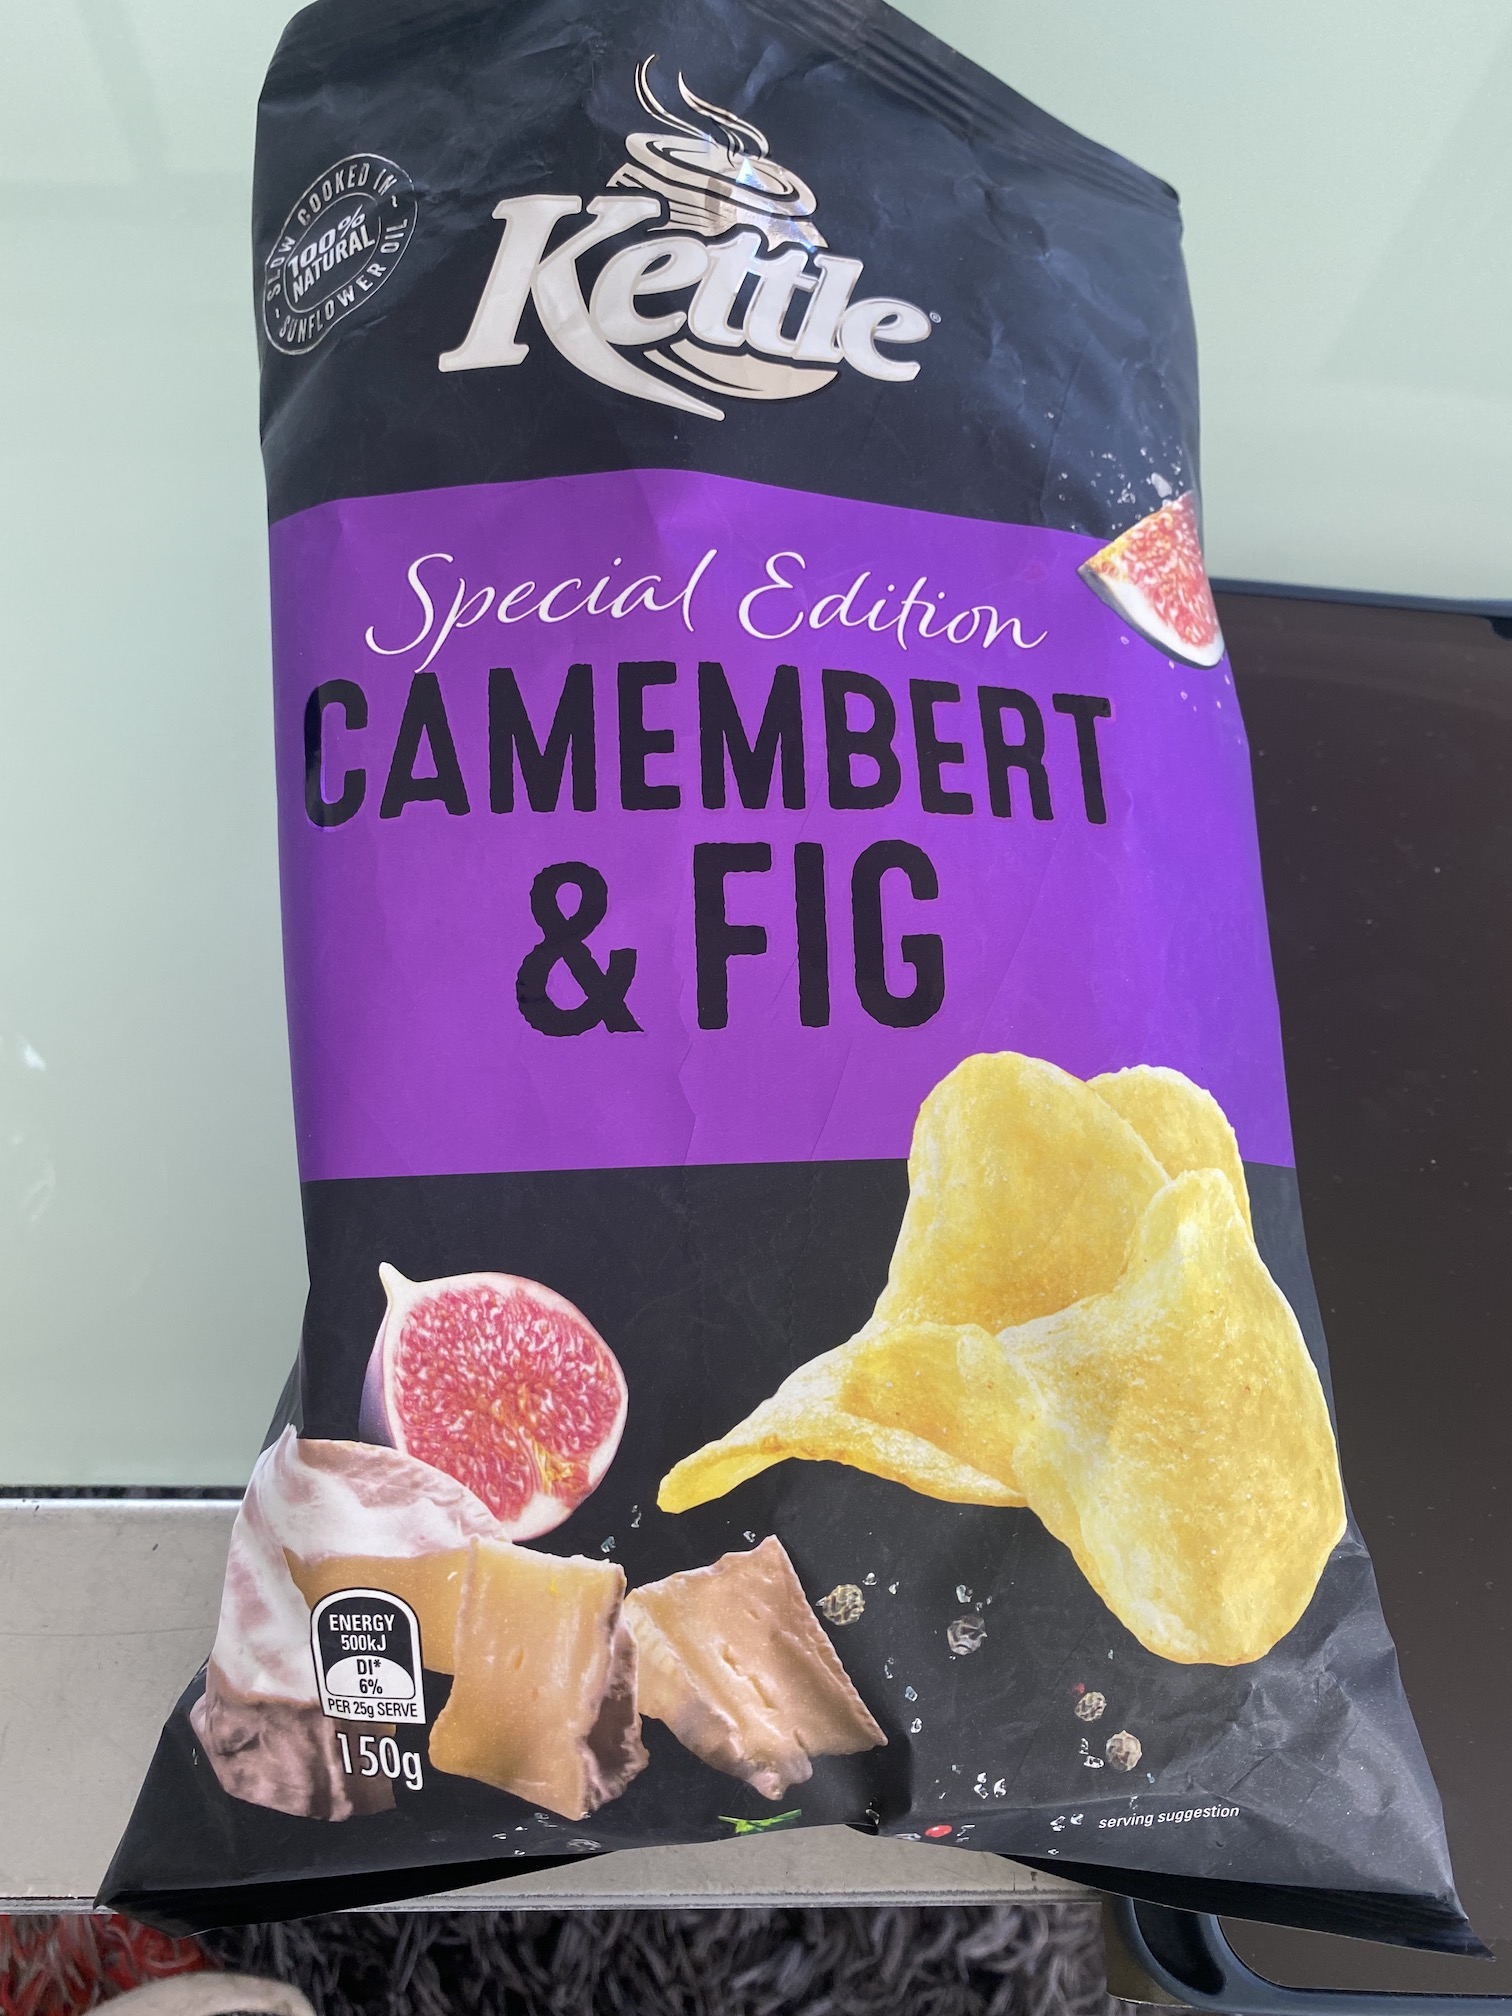 Kettle special edition camembert and fig